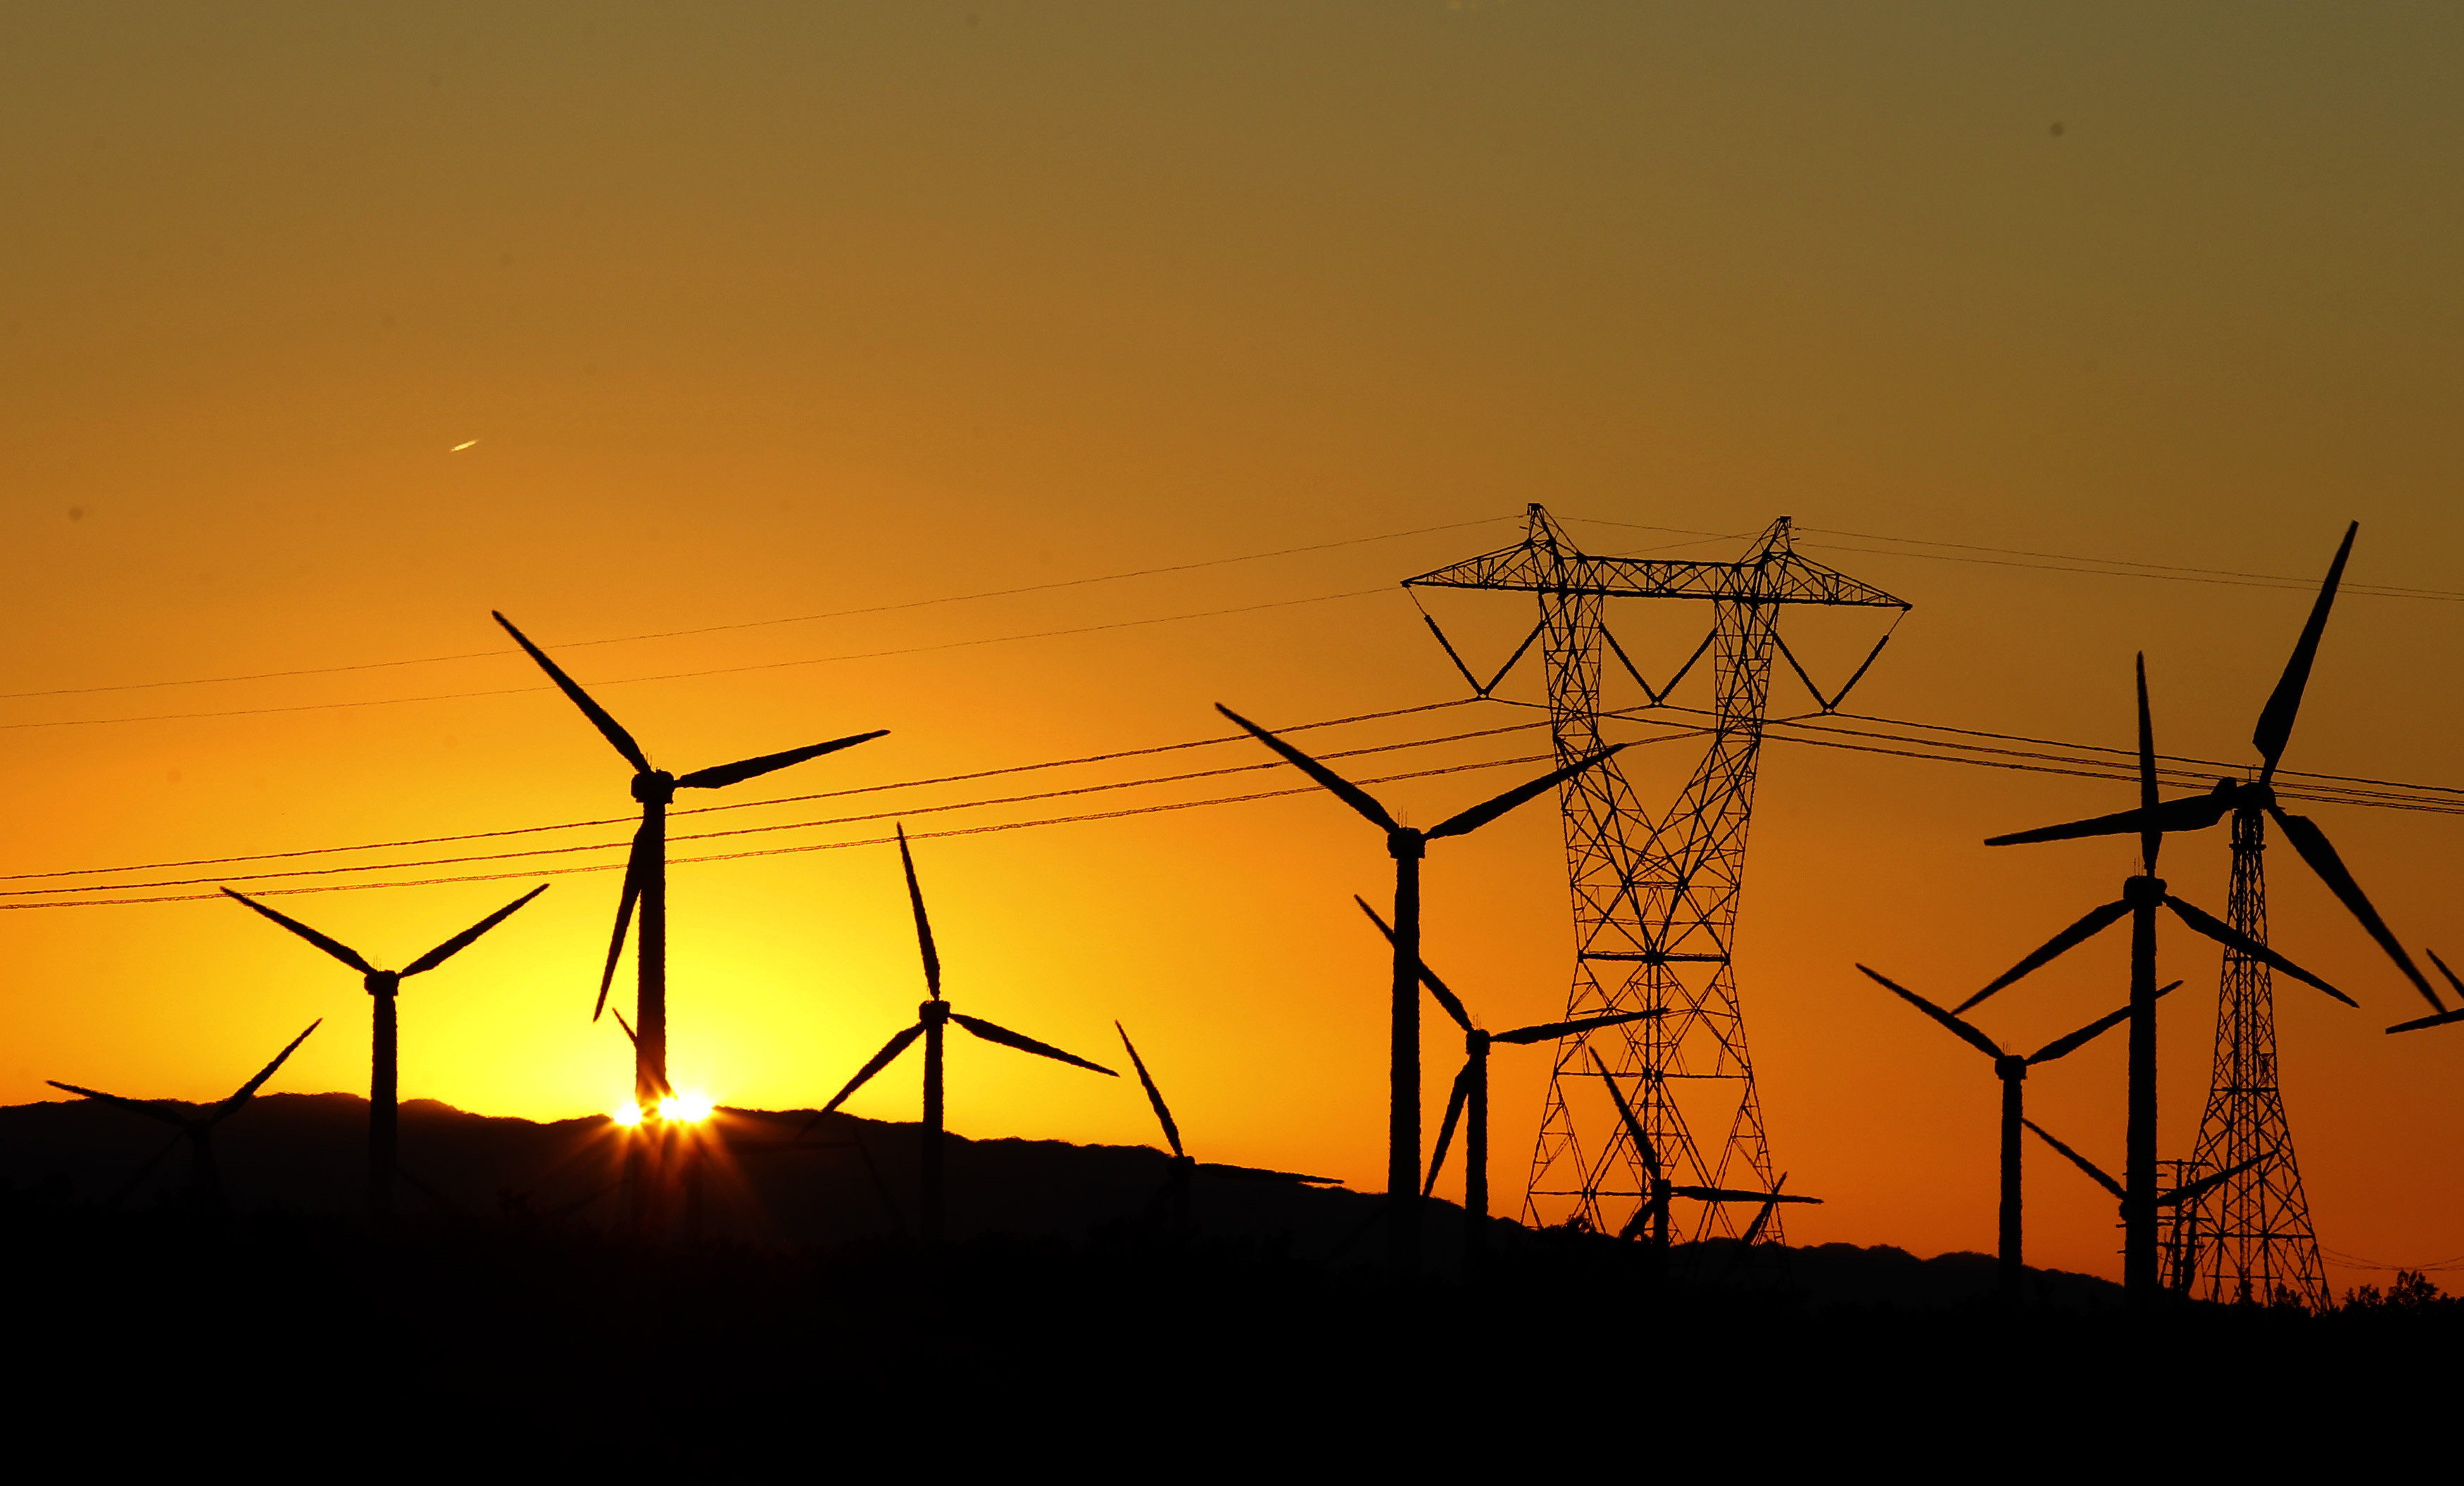 The sun rises behind windmills at a wind farm in Palm Springs, California, February 9, 2011